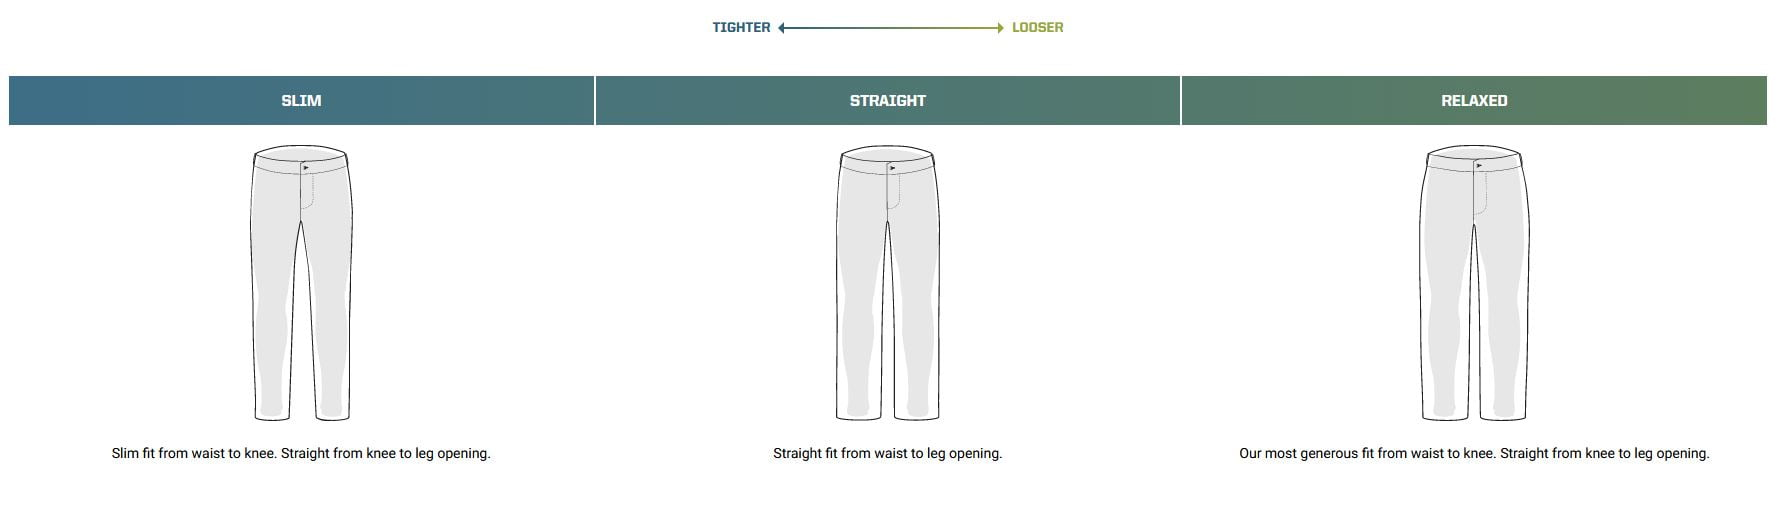 5.11 mens bottom fit guide